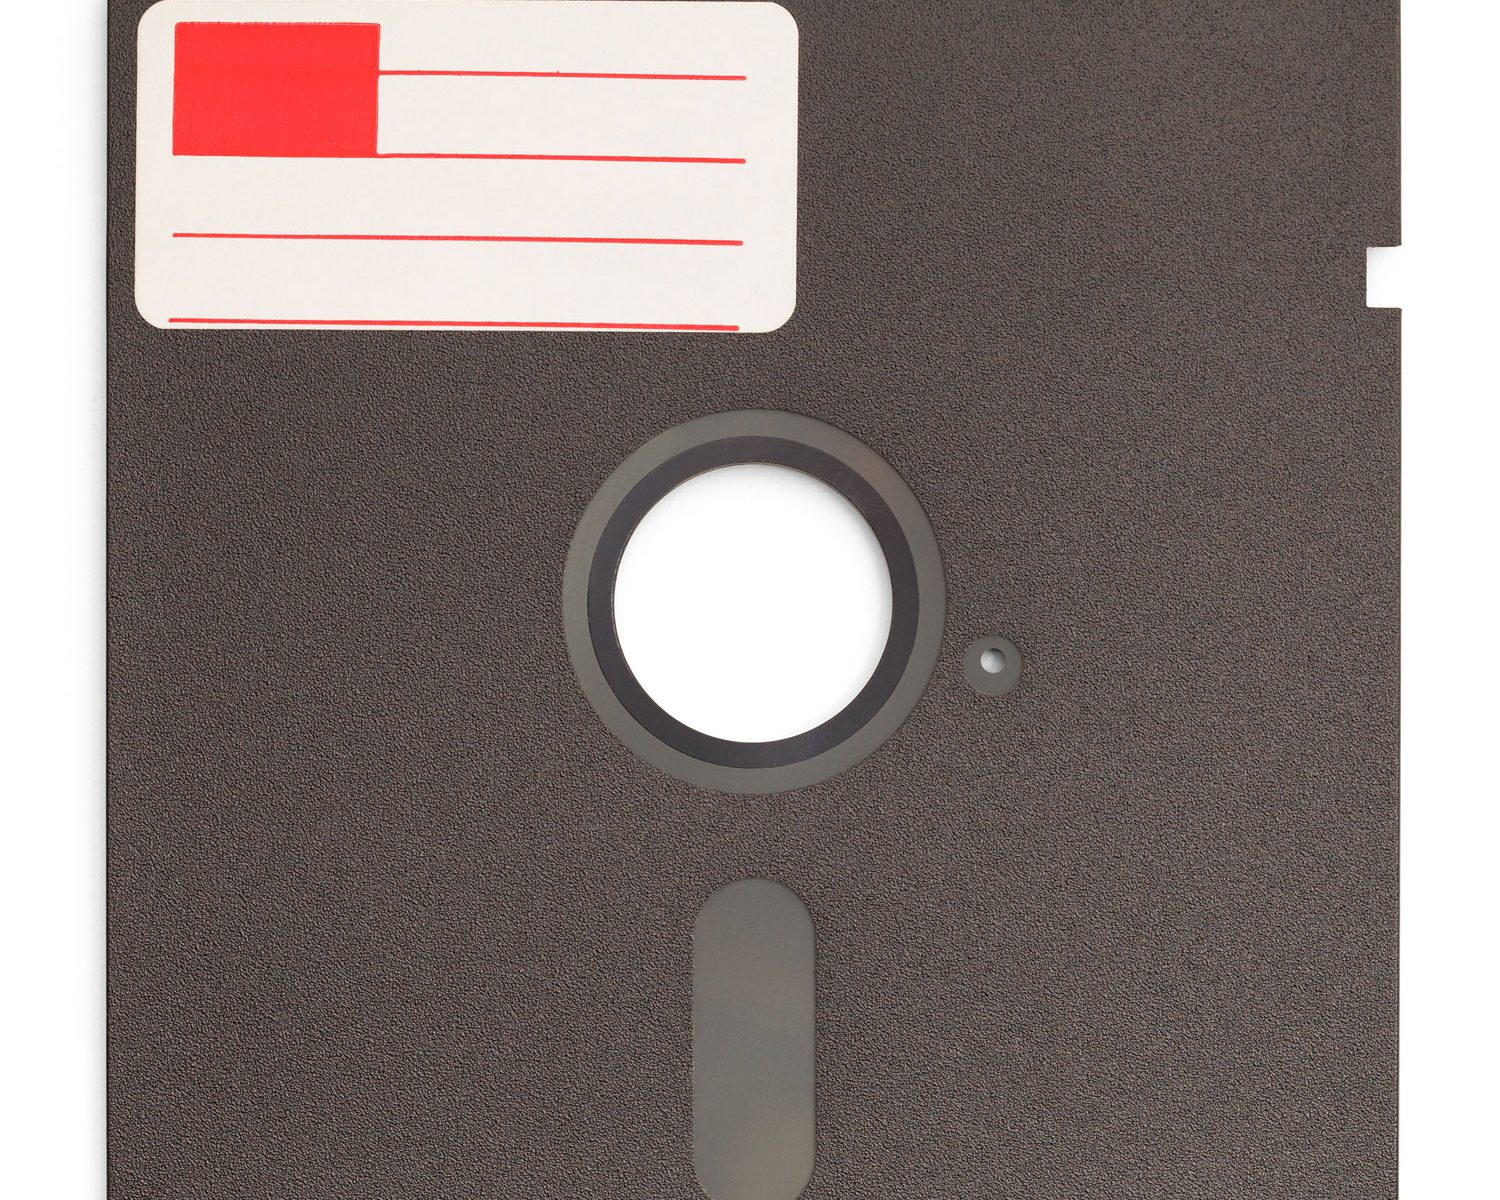 Floppy Disc - one of Forms Plus first products